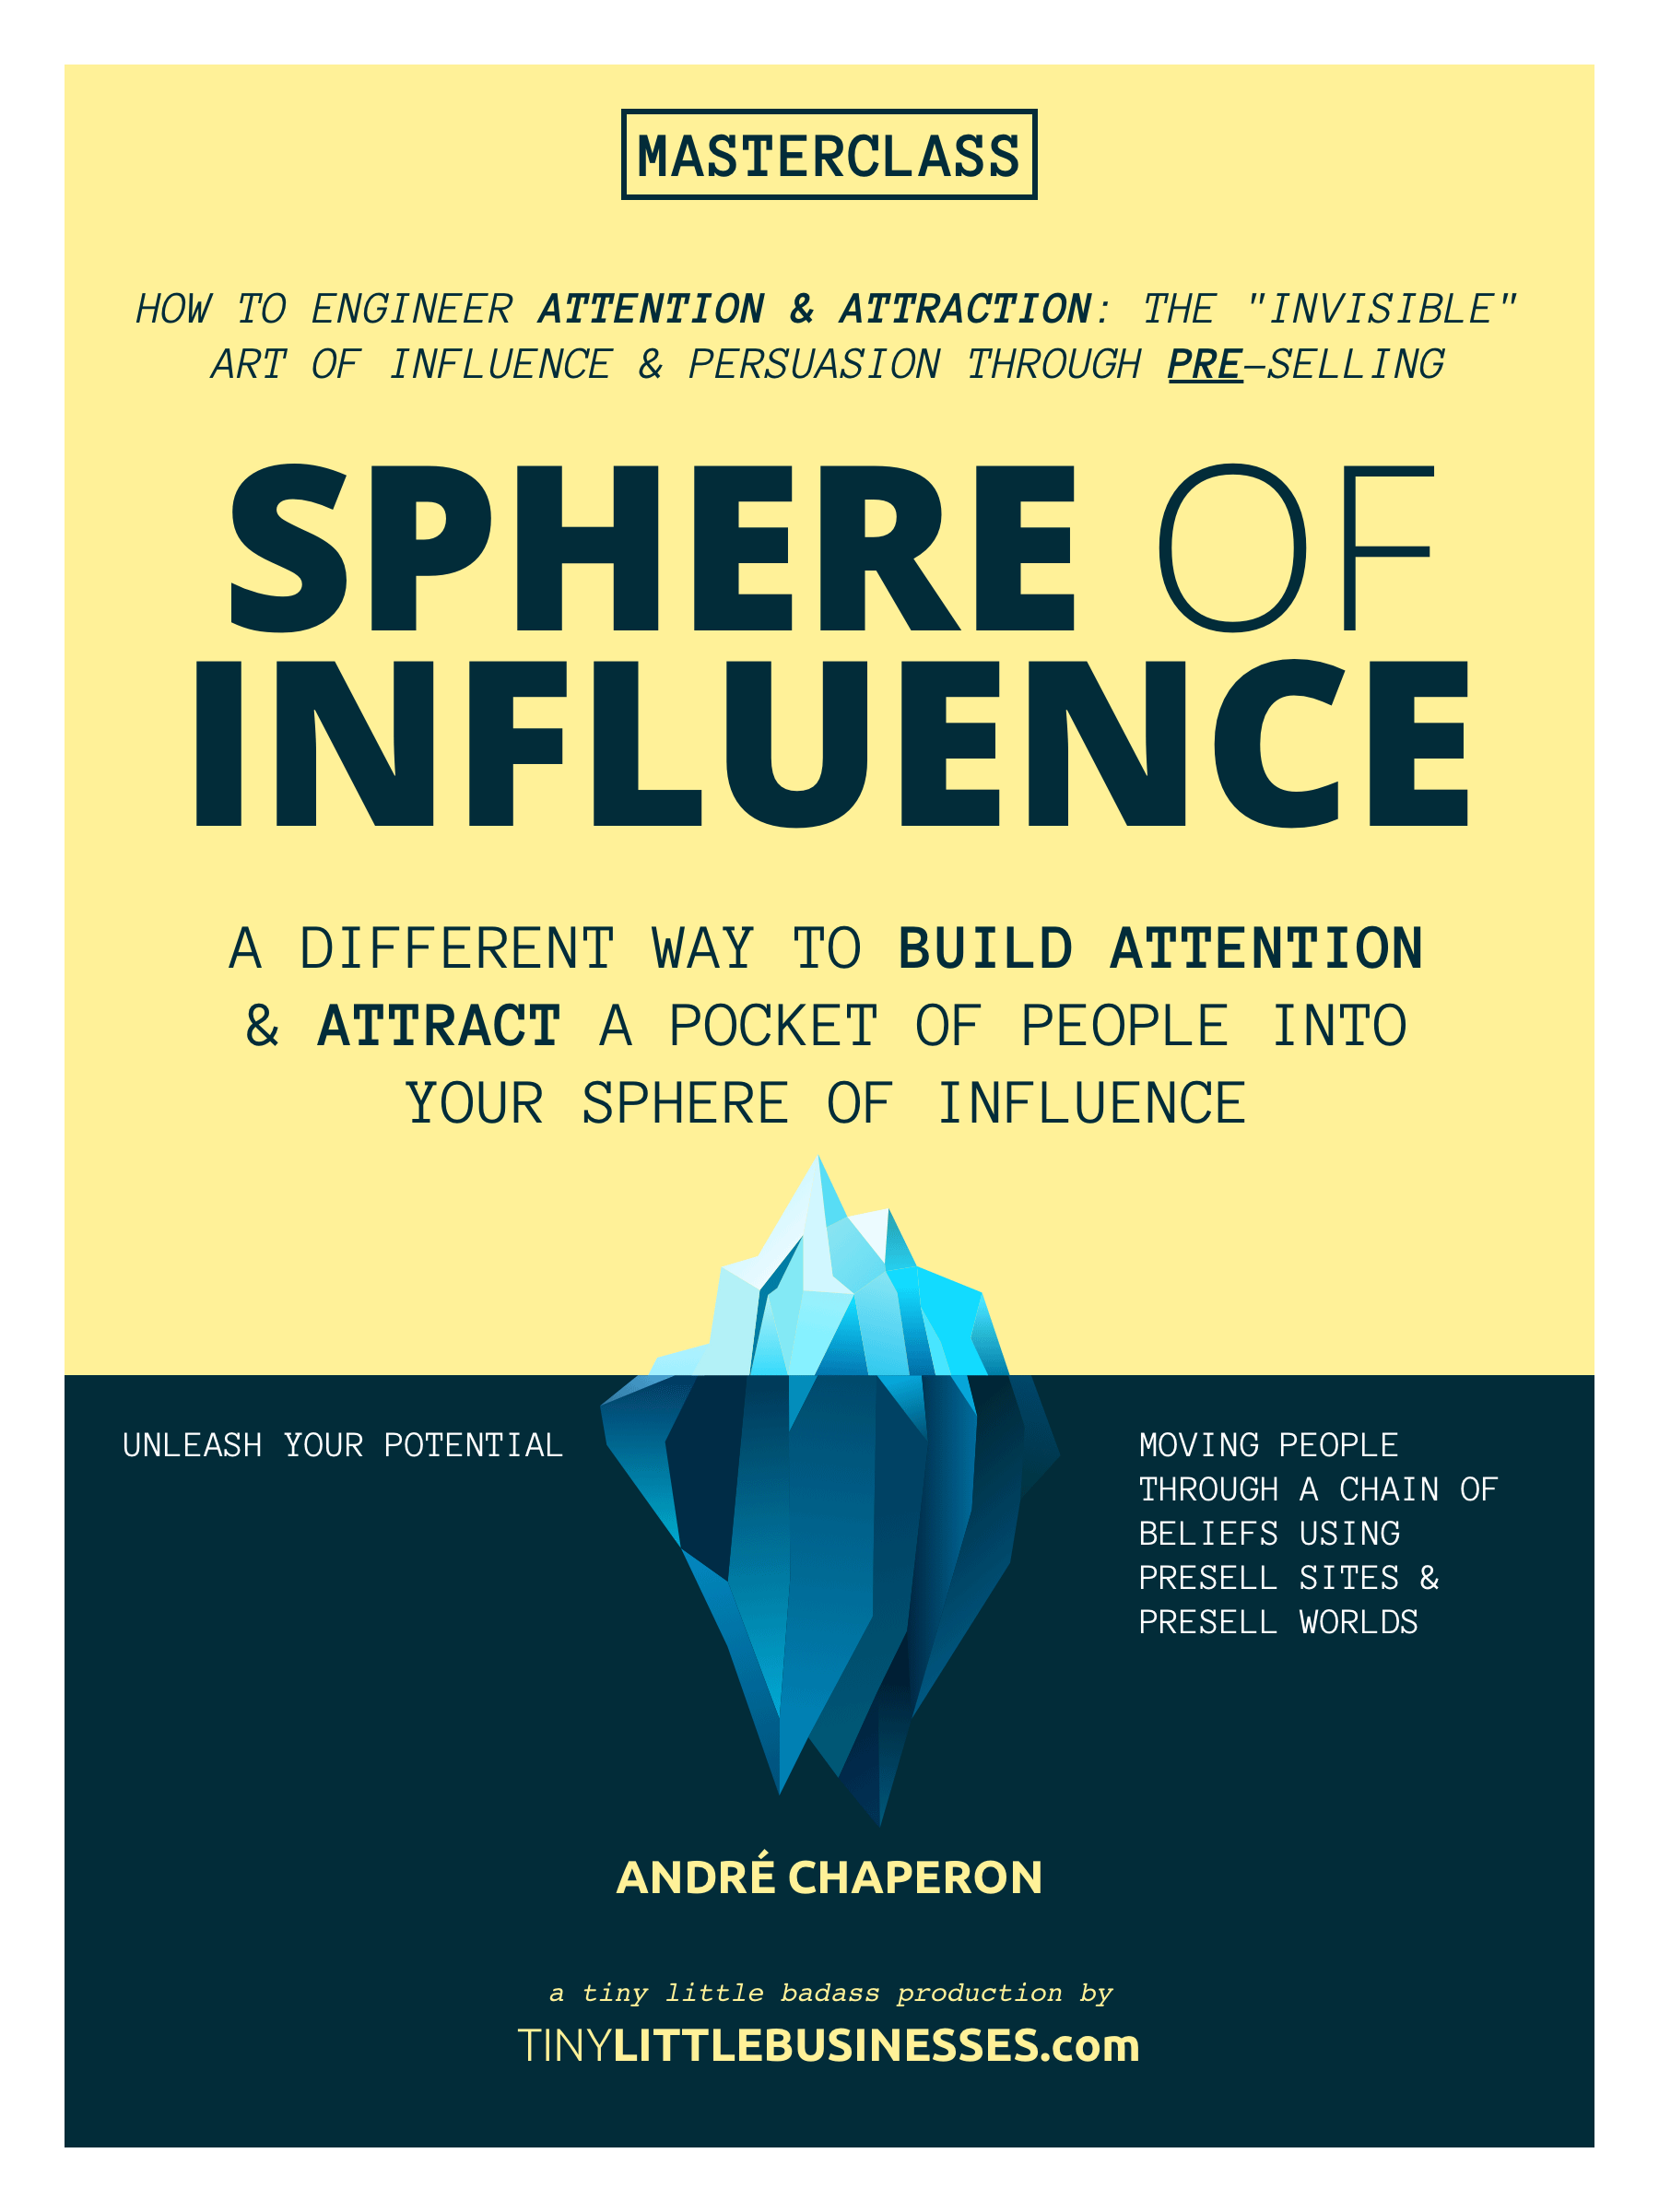 Sphere of Influence: The Art of Invisible Influence